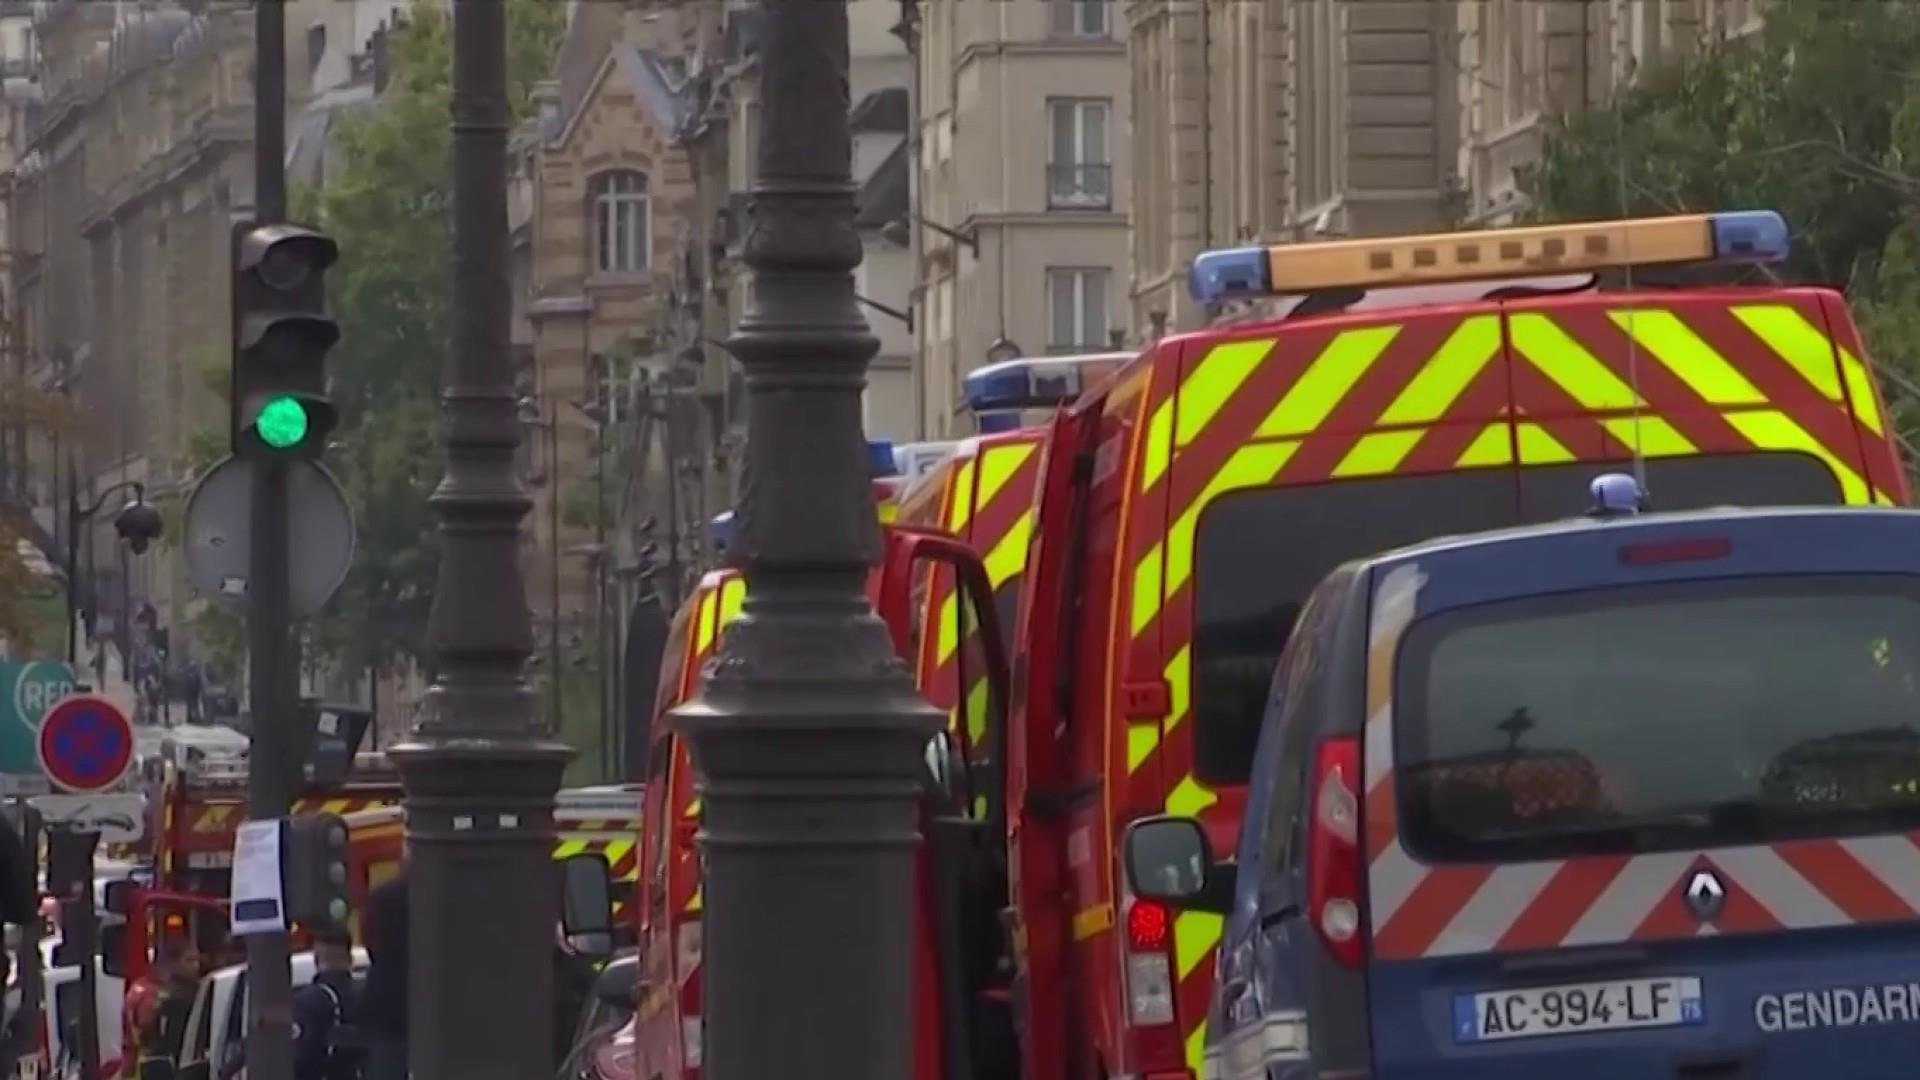 IT worker kills 3 police officers, administrative employee in knife attack at Paris police headquarters